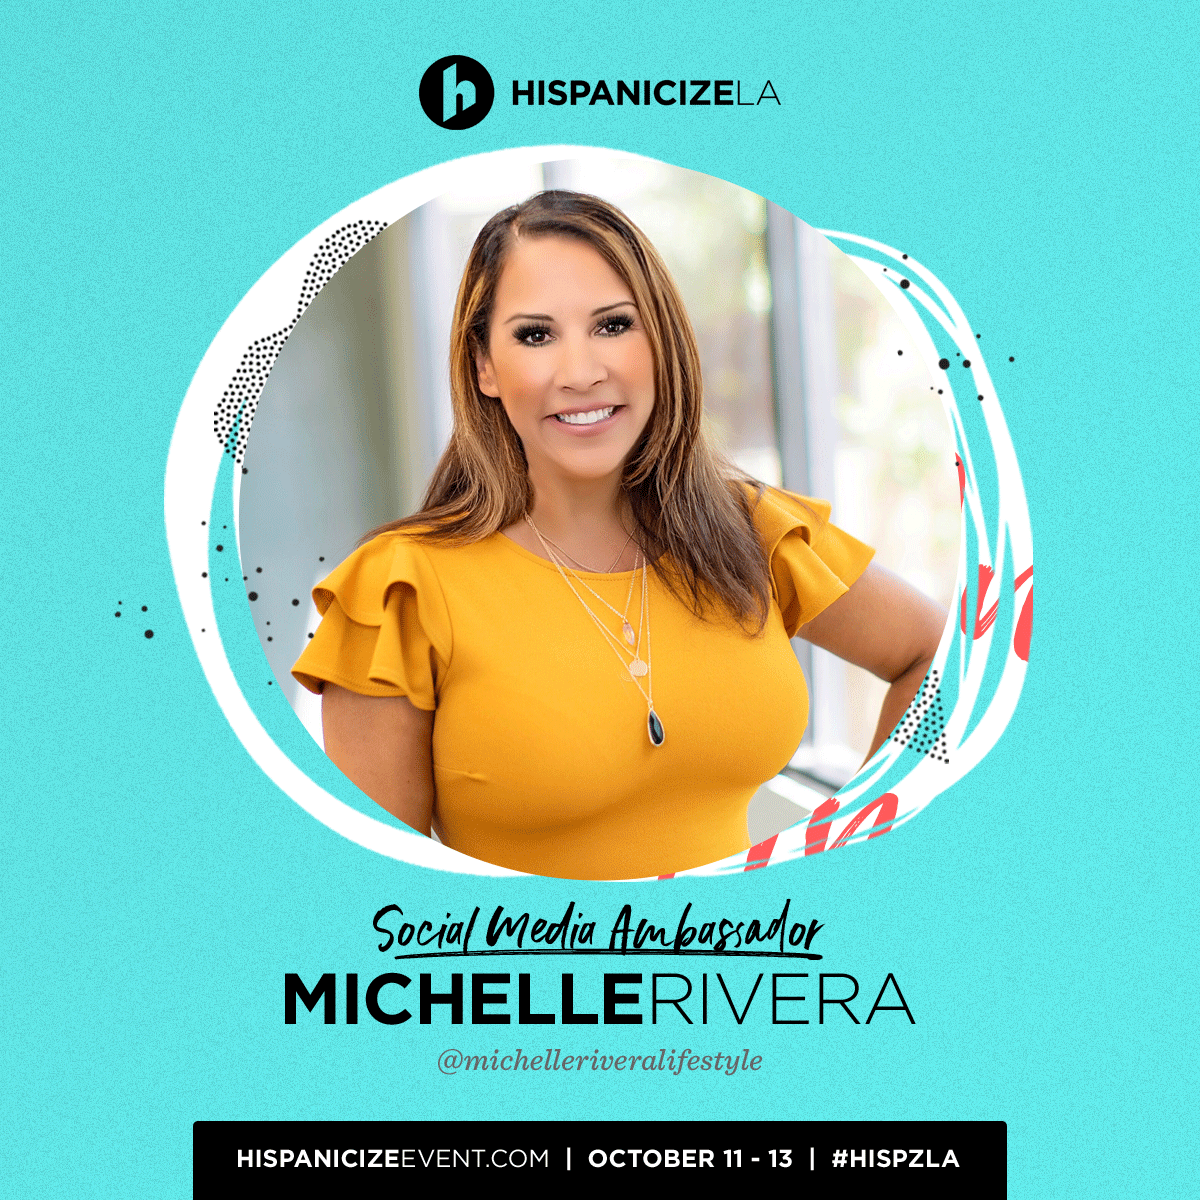 Michelle Rivera is Joining Hispanicize As A Social Media Ambassador. #HISPZLA